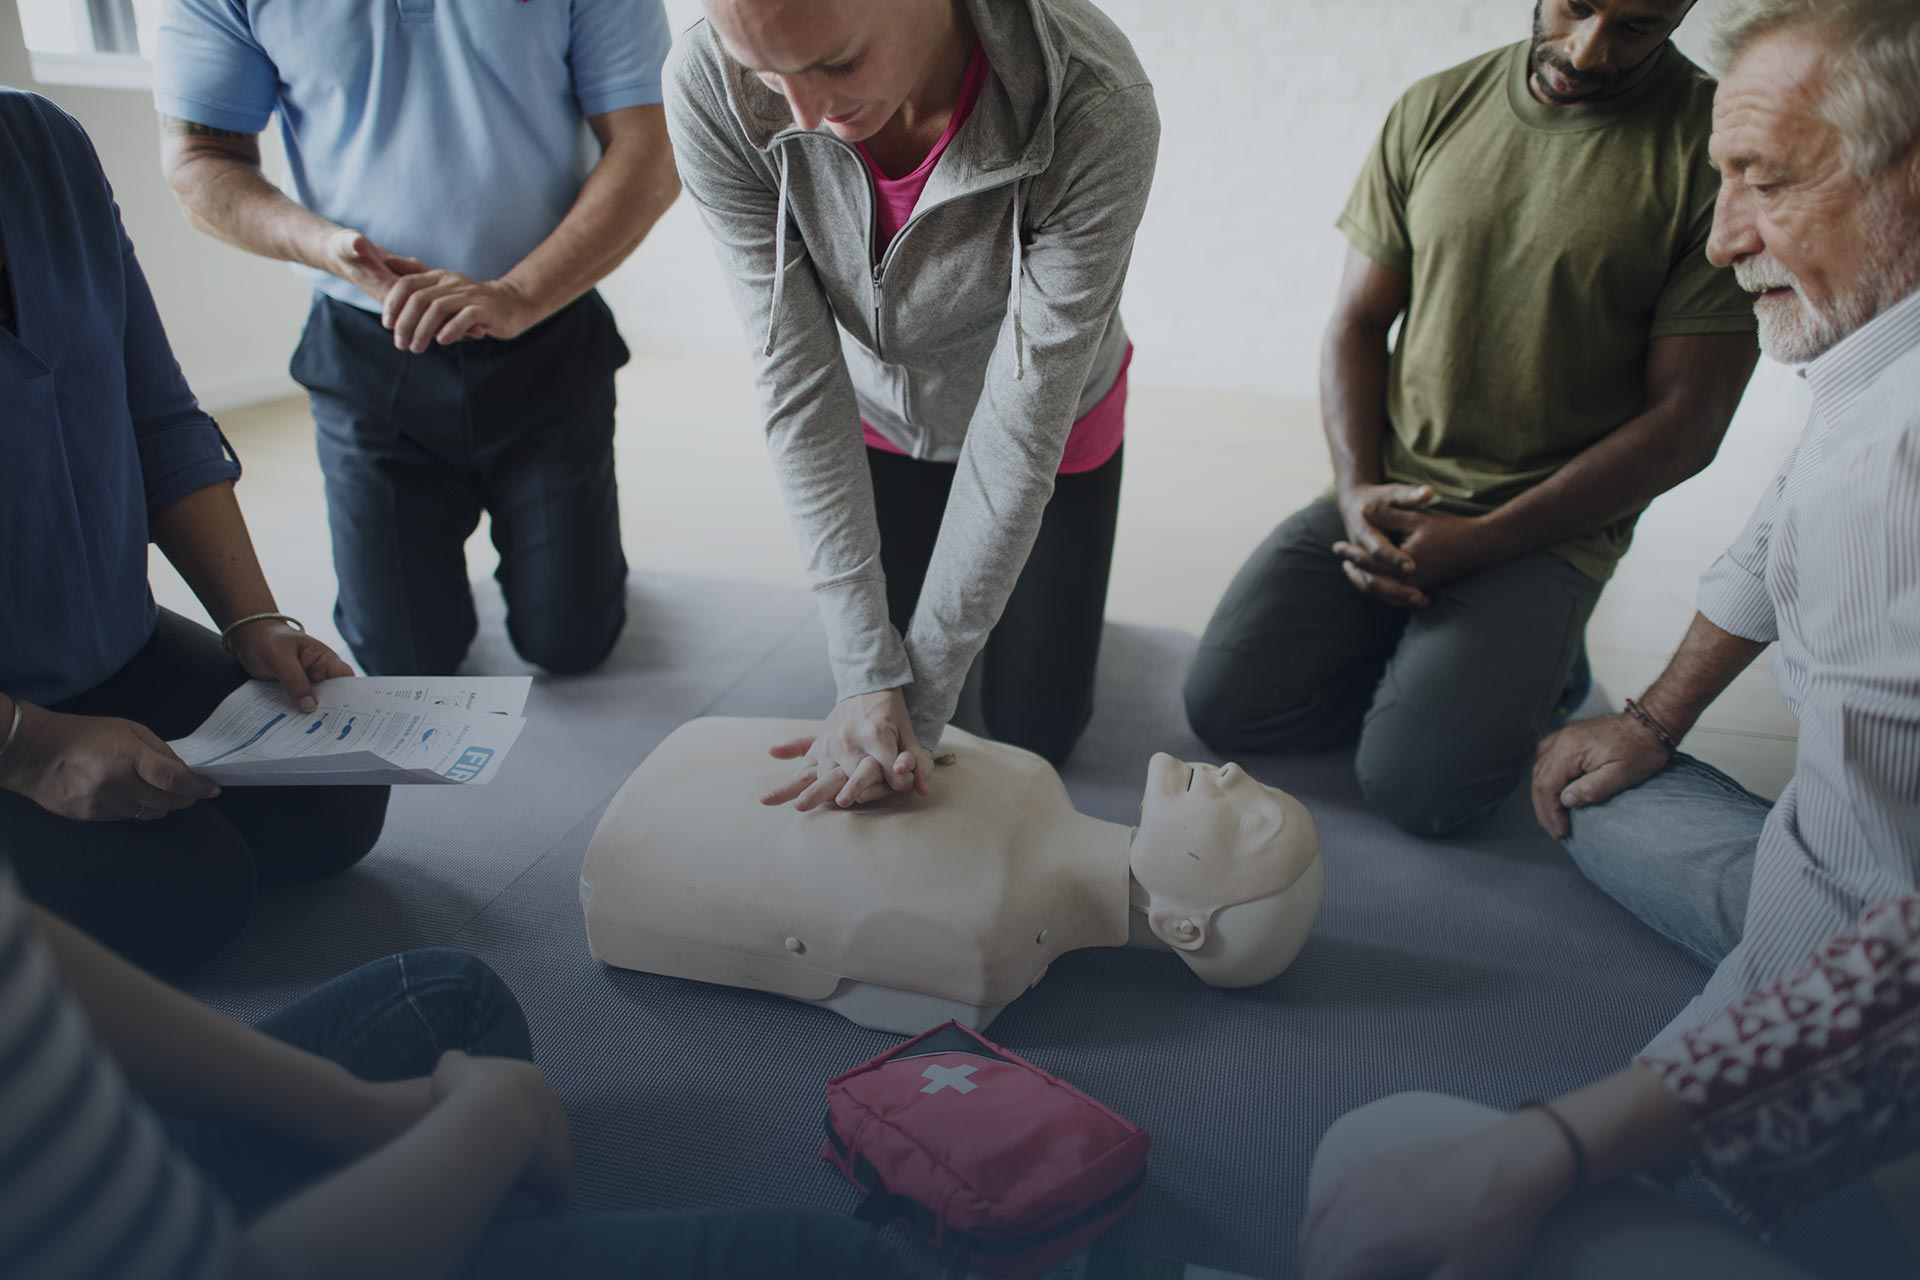 First Aid, Resuscitation and Rescue Training